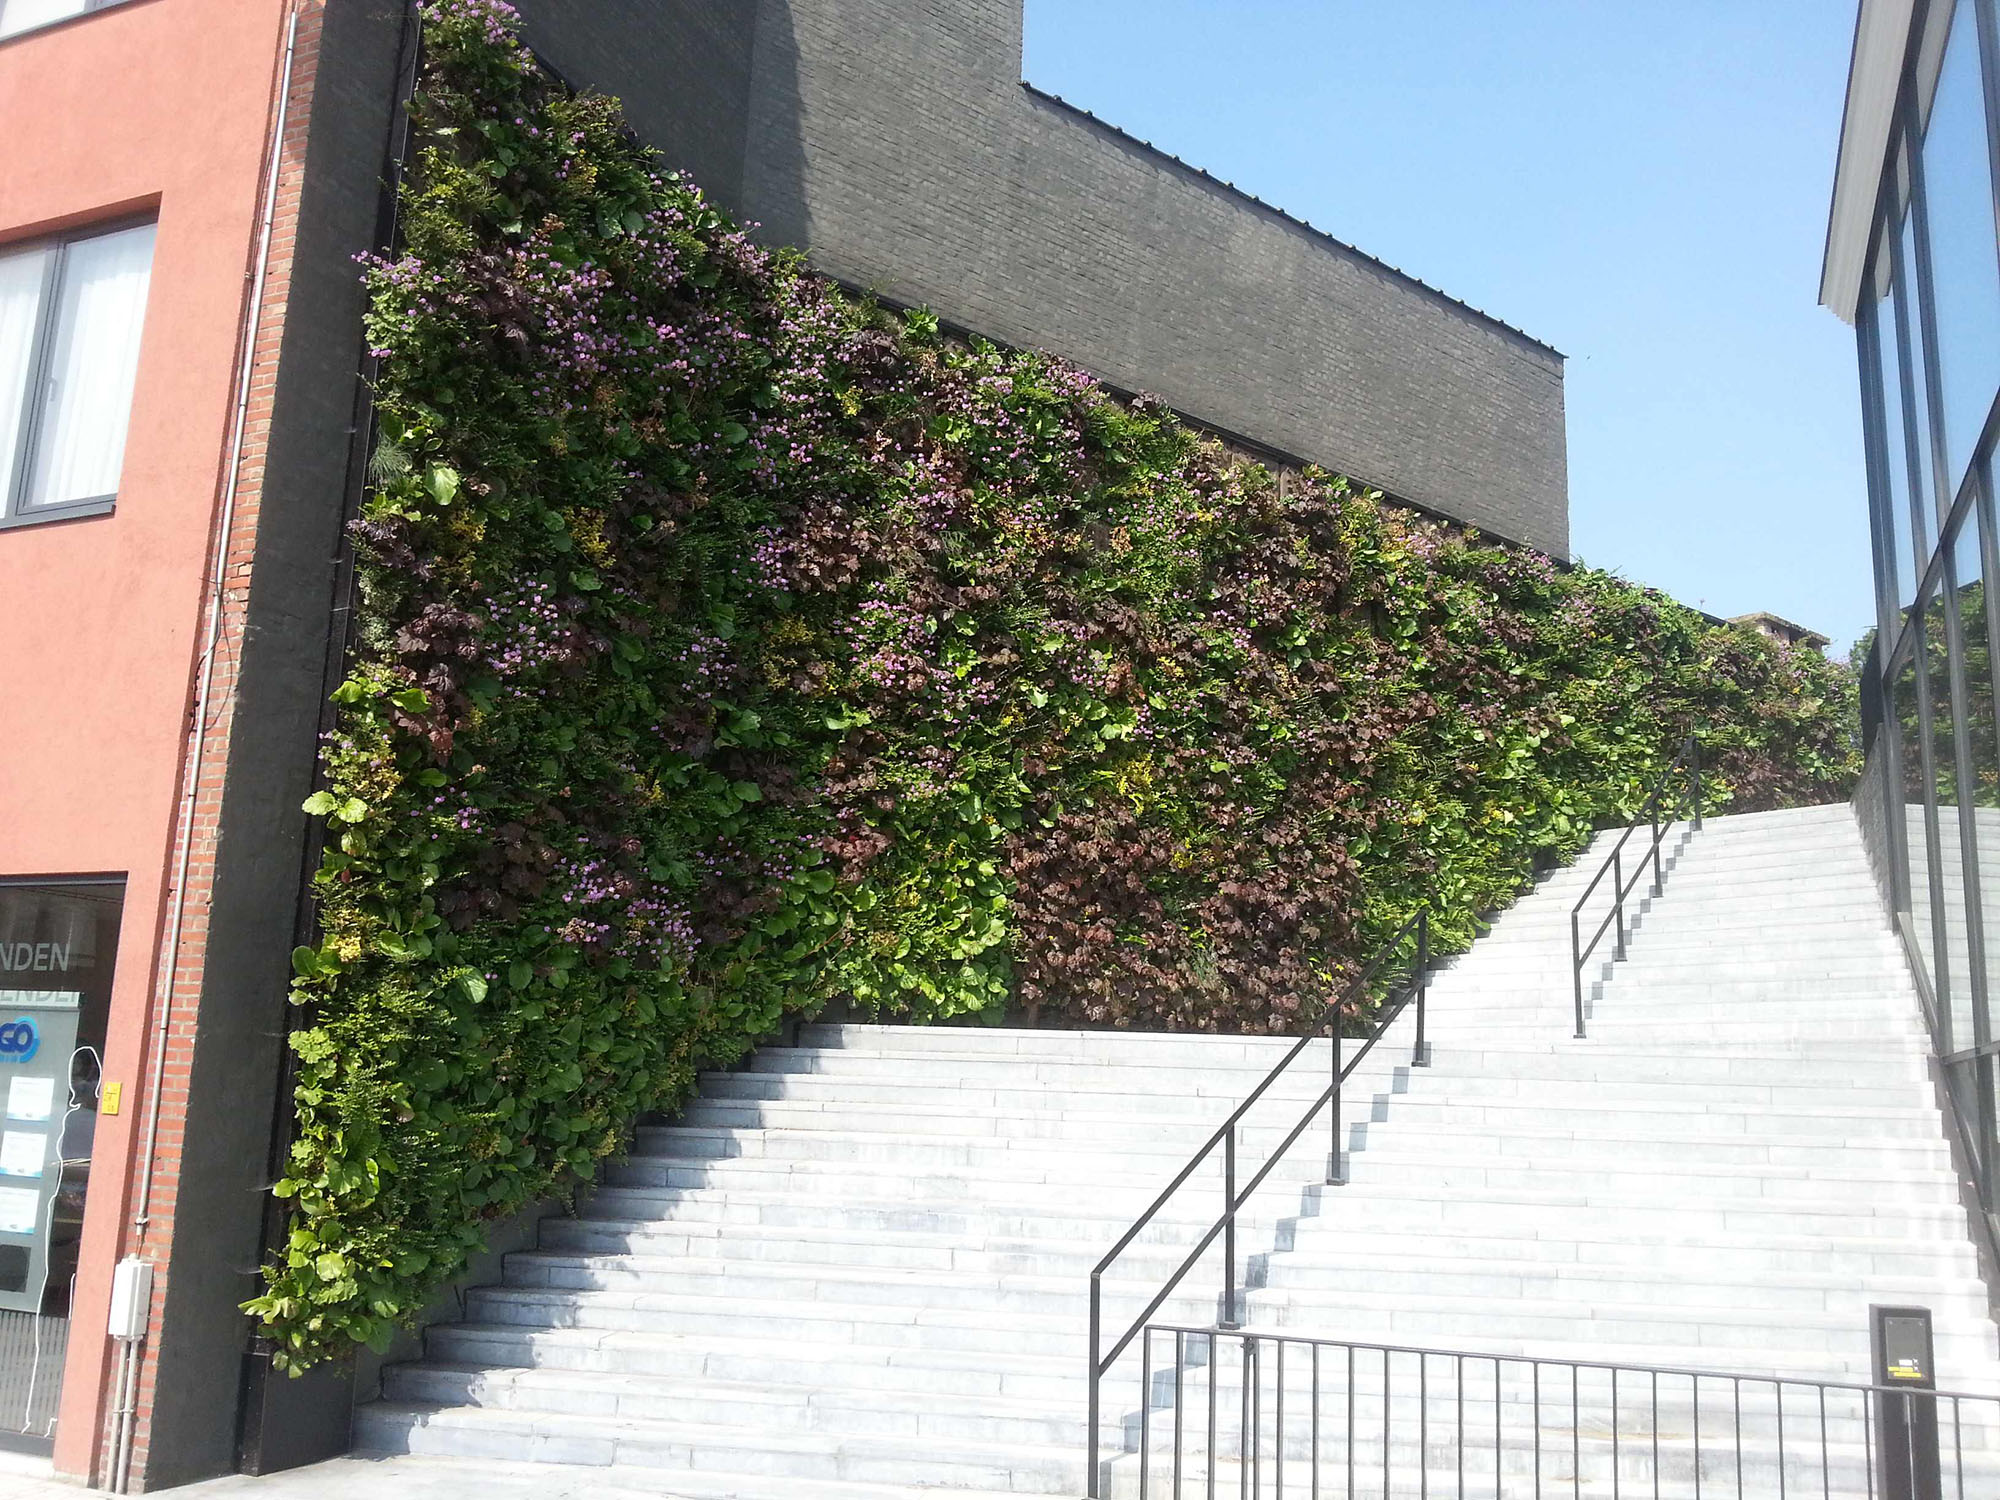 Green wall installed around an exterior staircase.